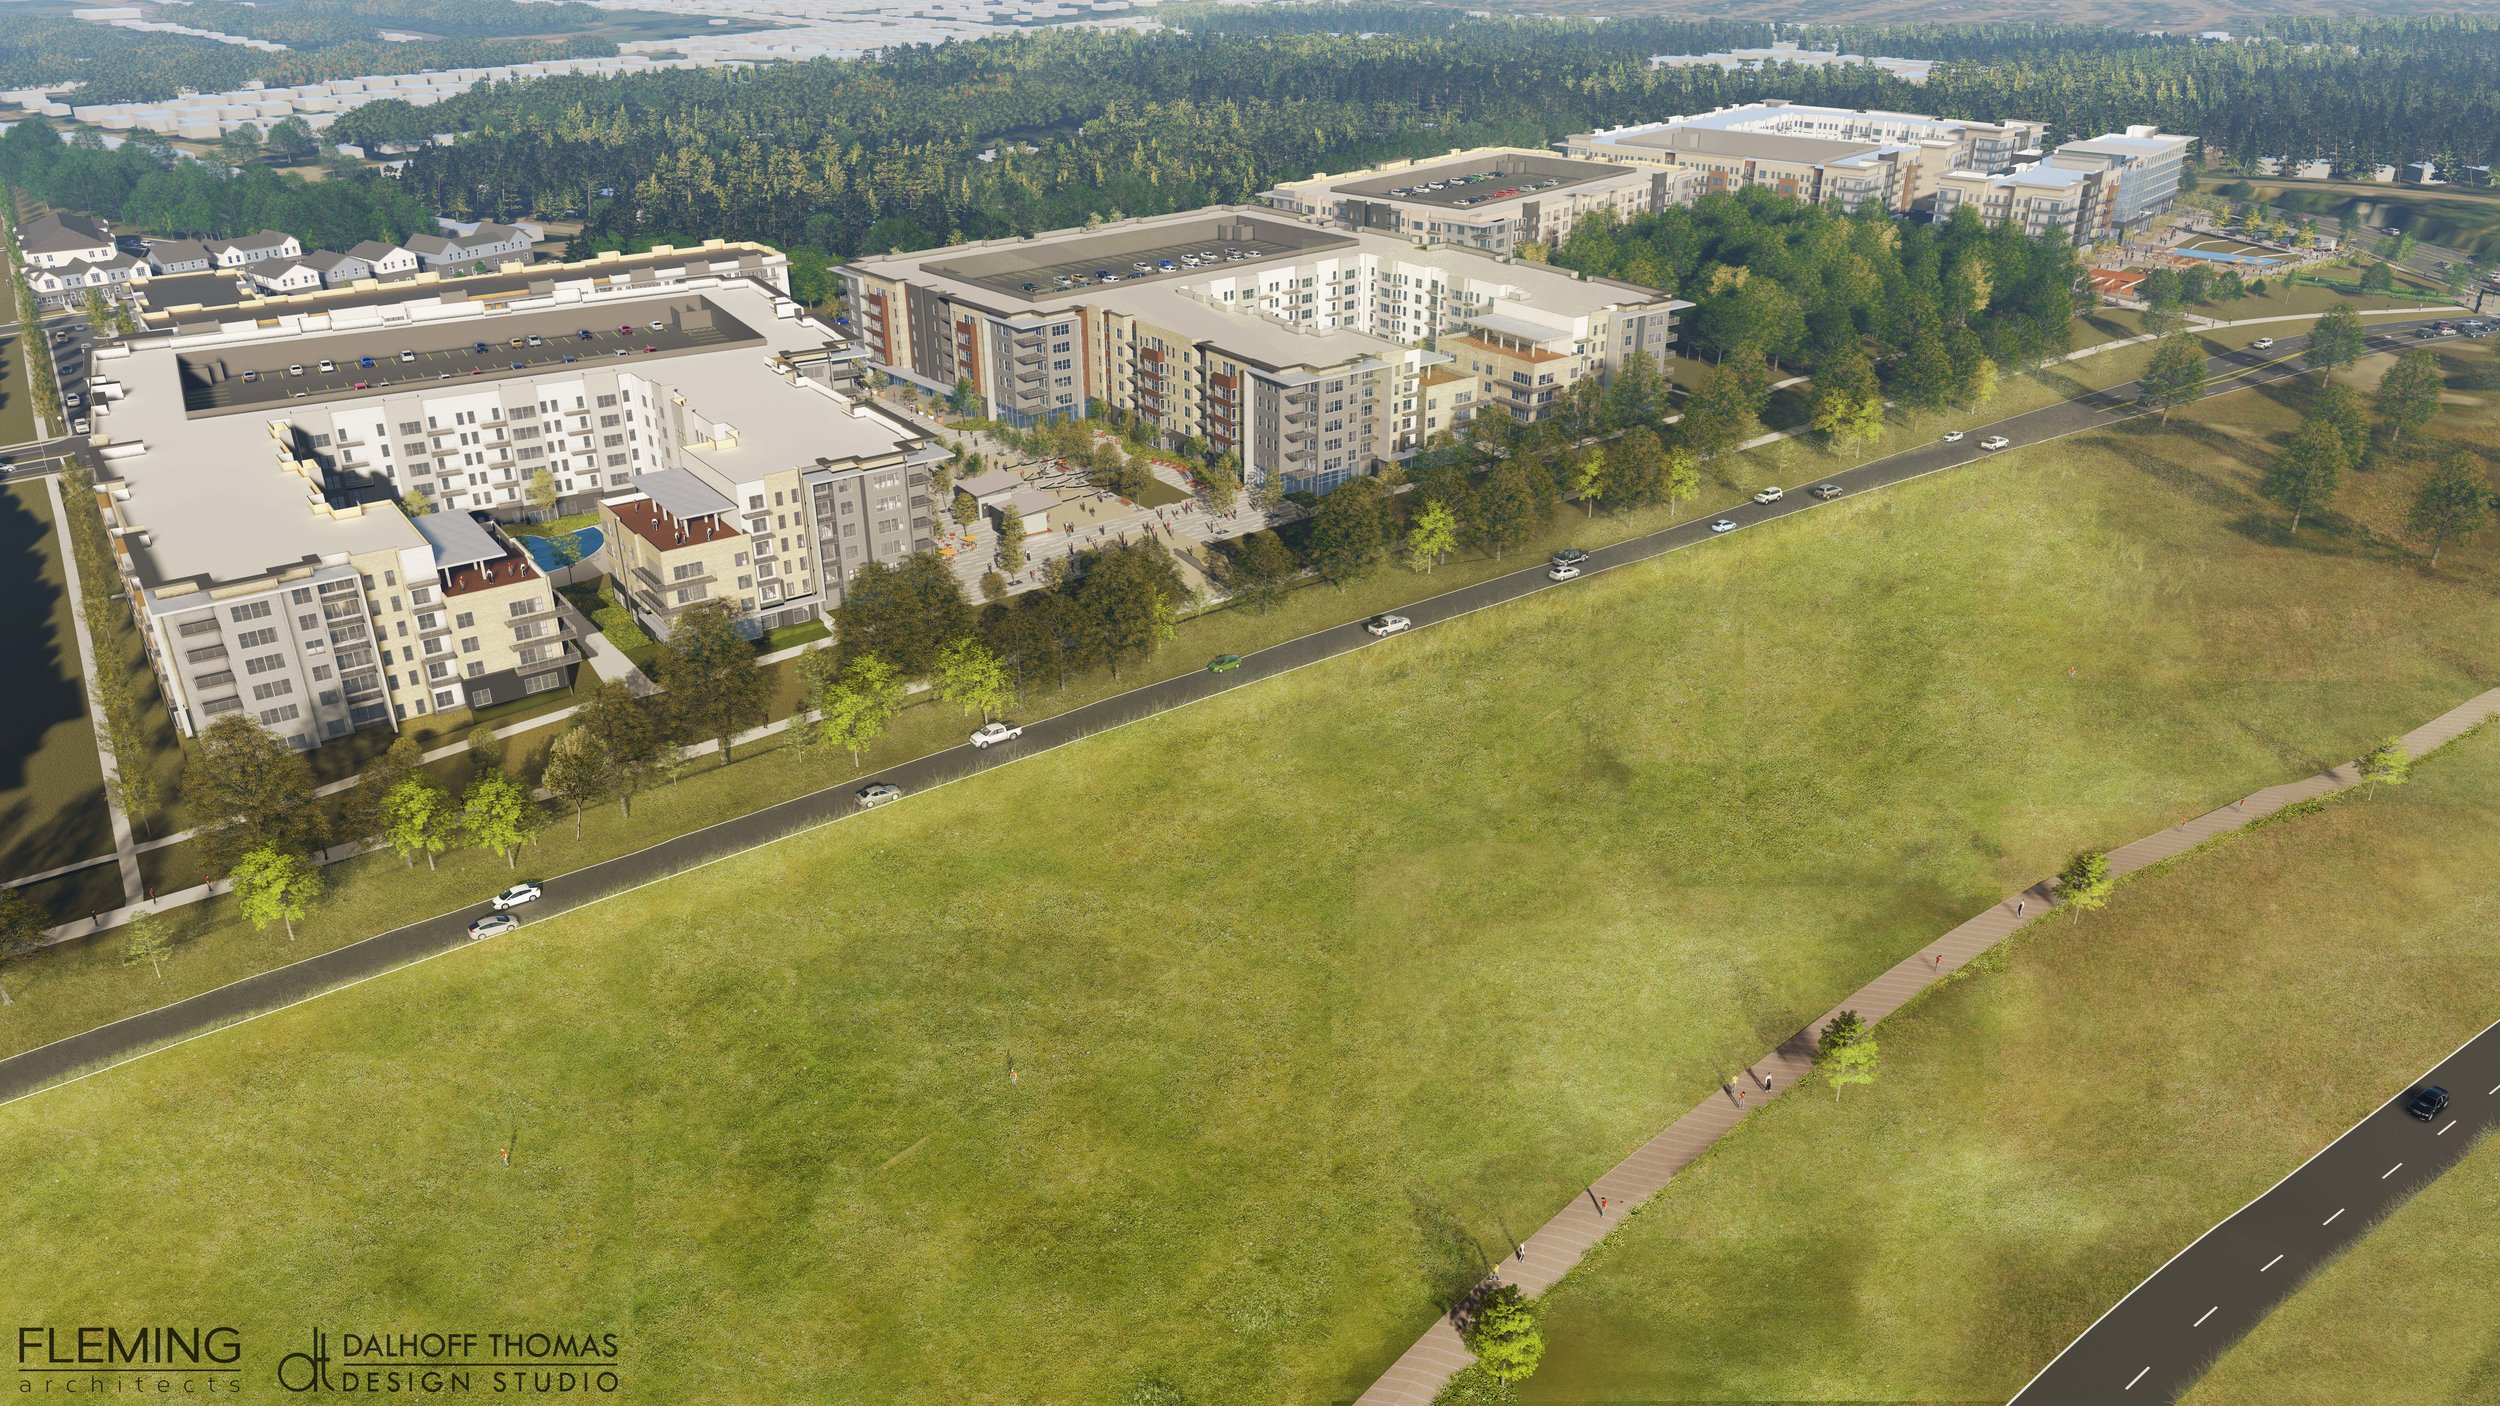 Mixed-use mid-rise apartments facing the Greenline and Shelby Farms Park